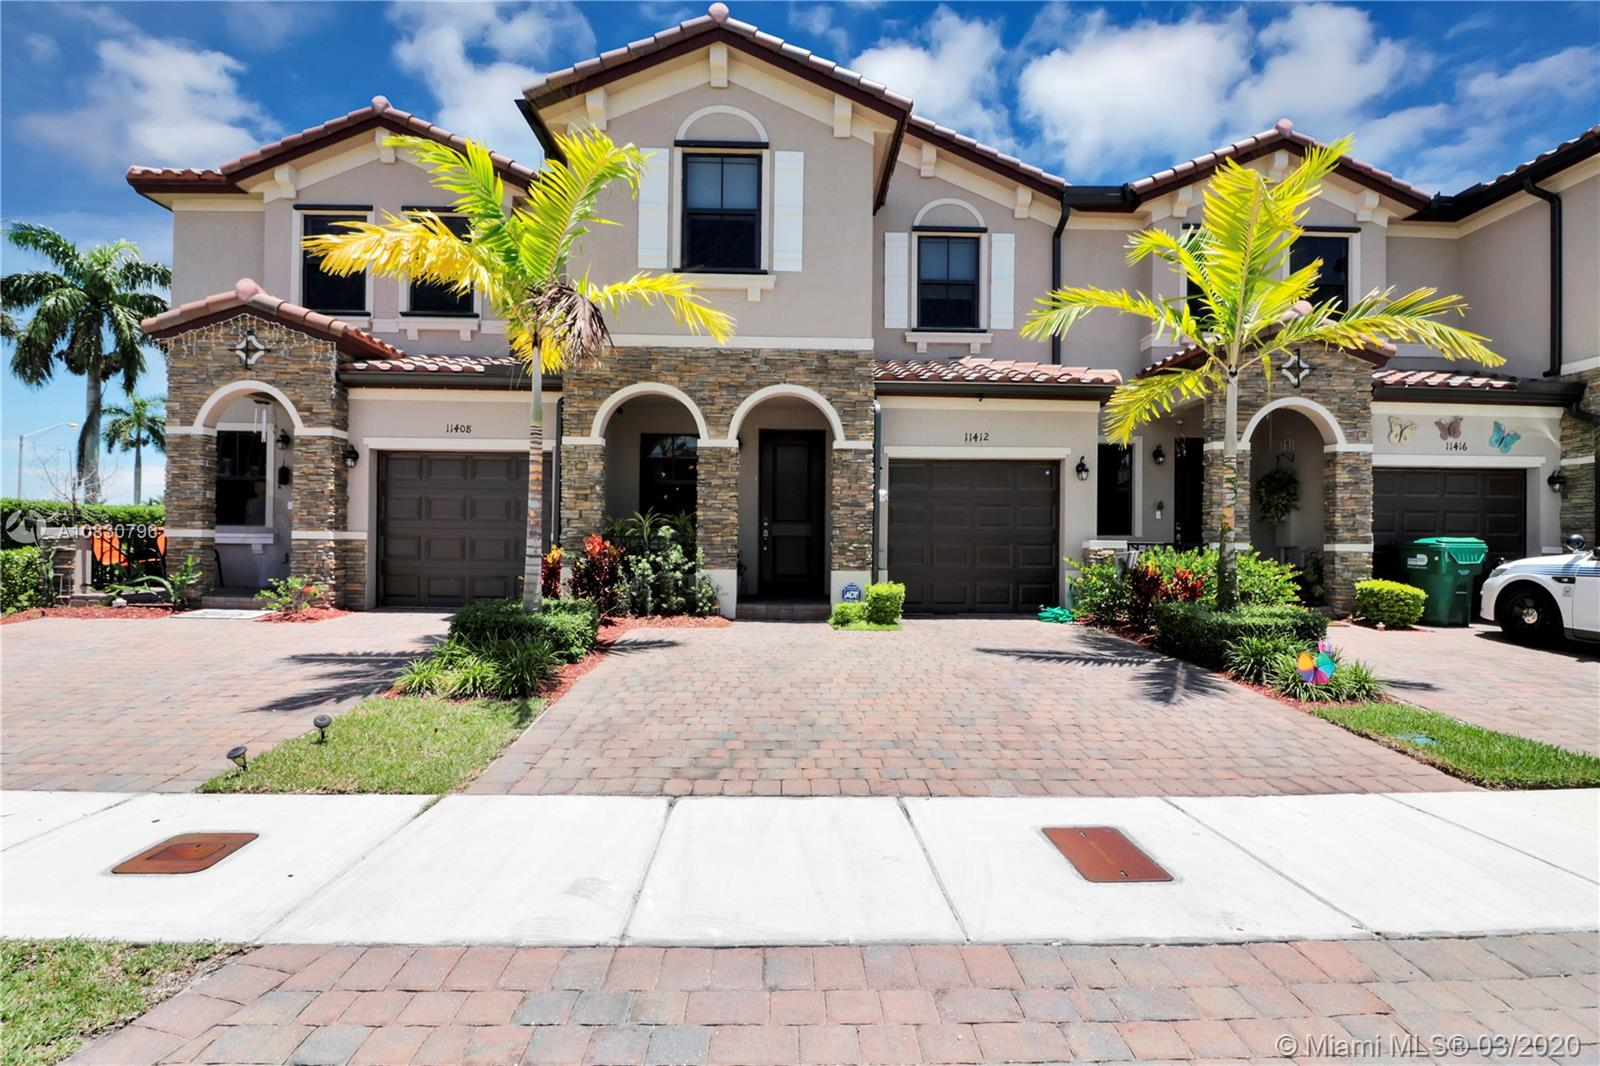 11412 SW 254th St, Homestead, FL 33032 - Homestead, FL real estate listing